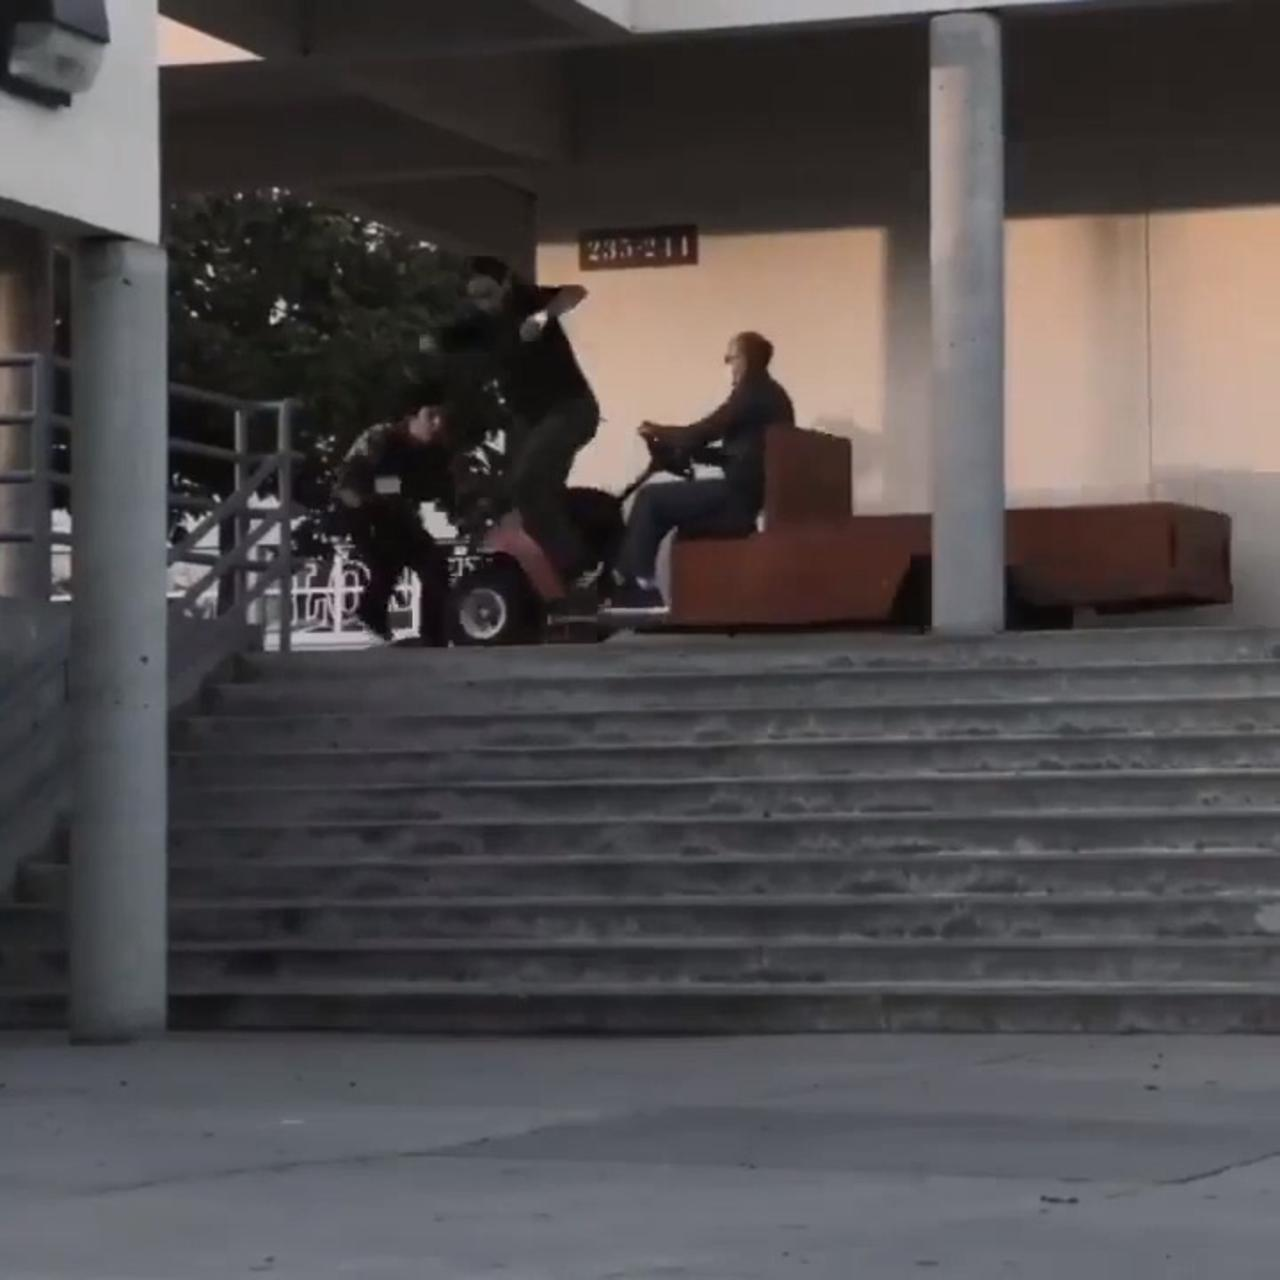 Cameraman on Skateboard Gets Hit By Cart While Filming His Roommate